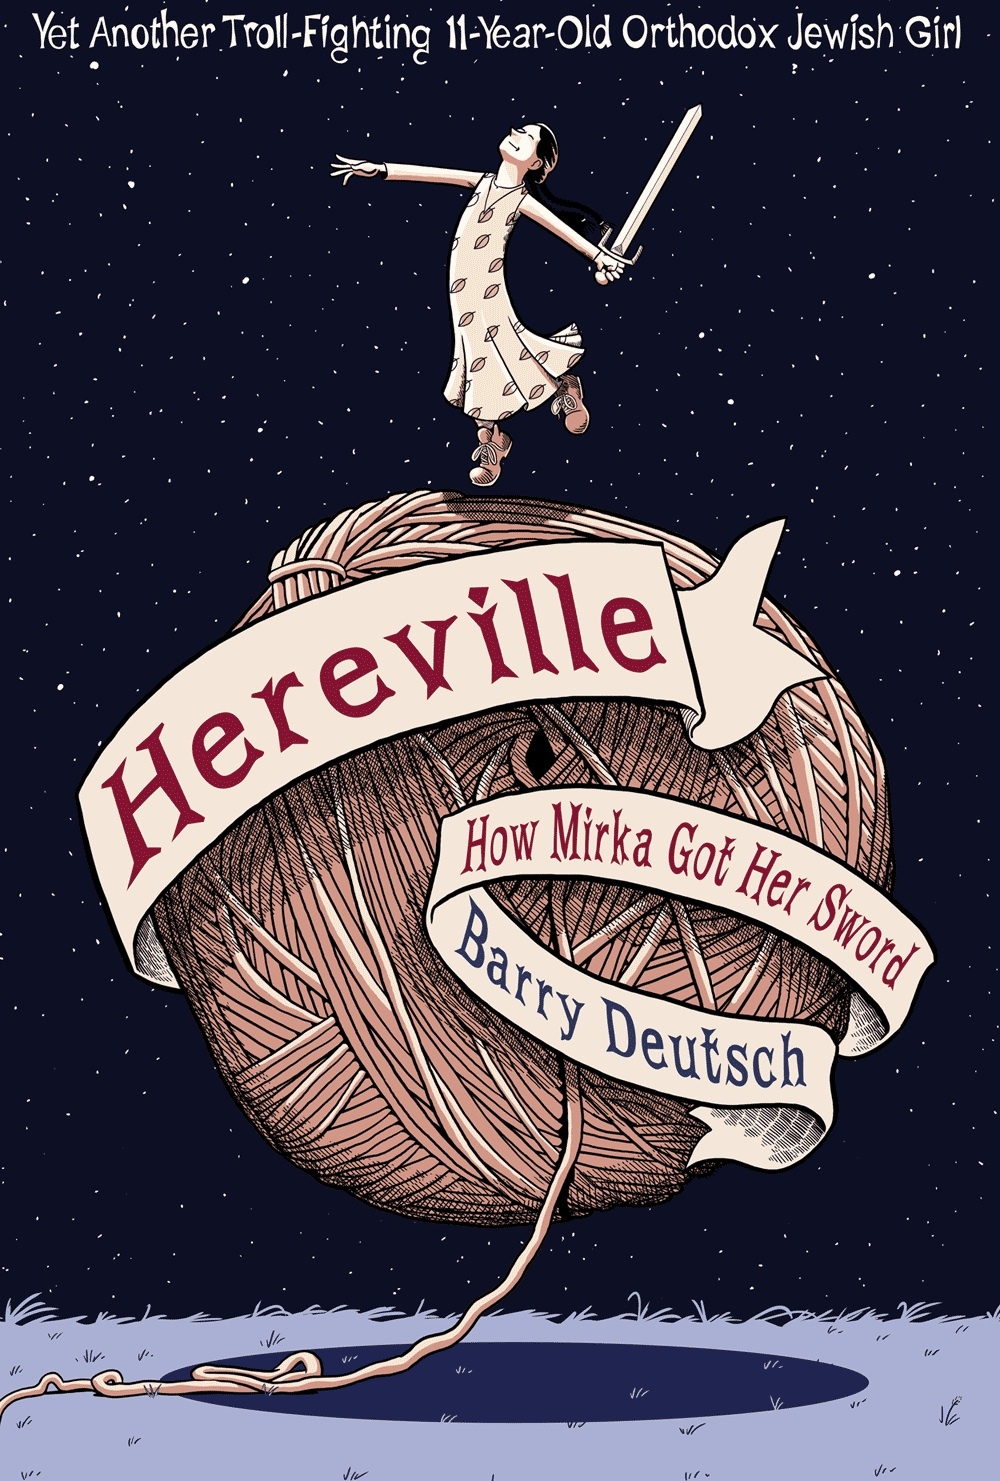 Cover to 'Hereville' with a girl, sword in hand, dancing on air right above a giant ball of yarn